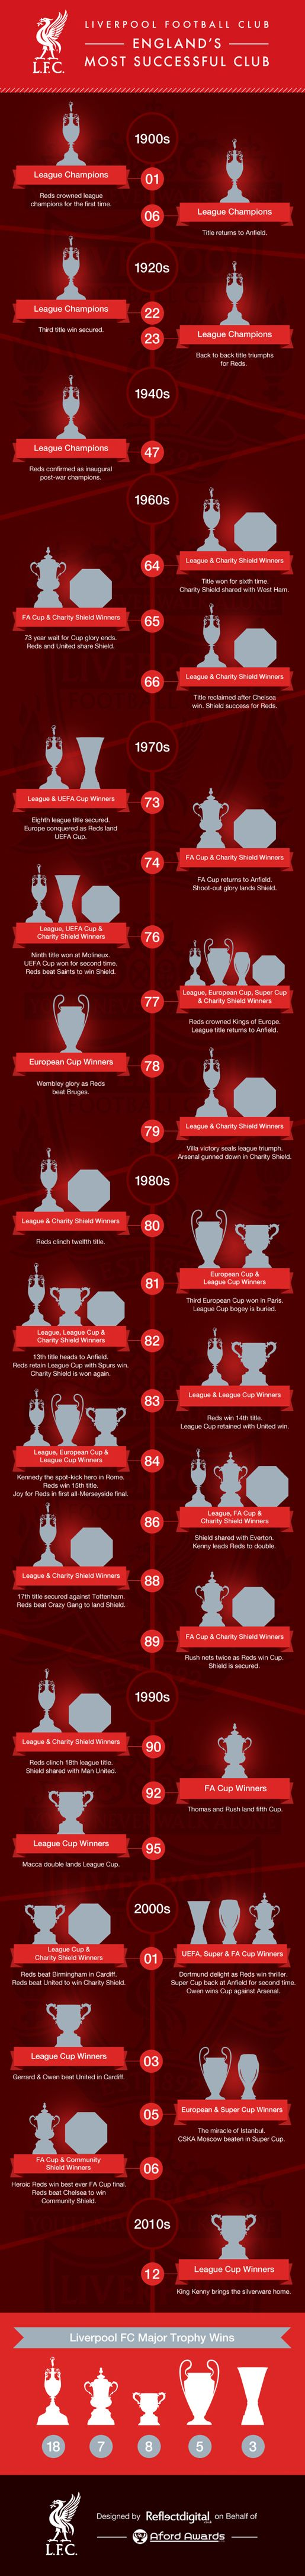 History of Liverpool Football Club Trophies